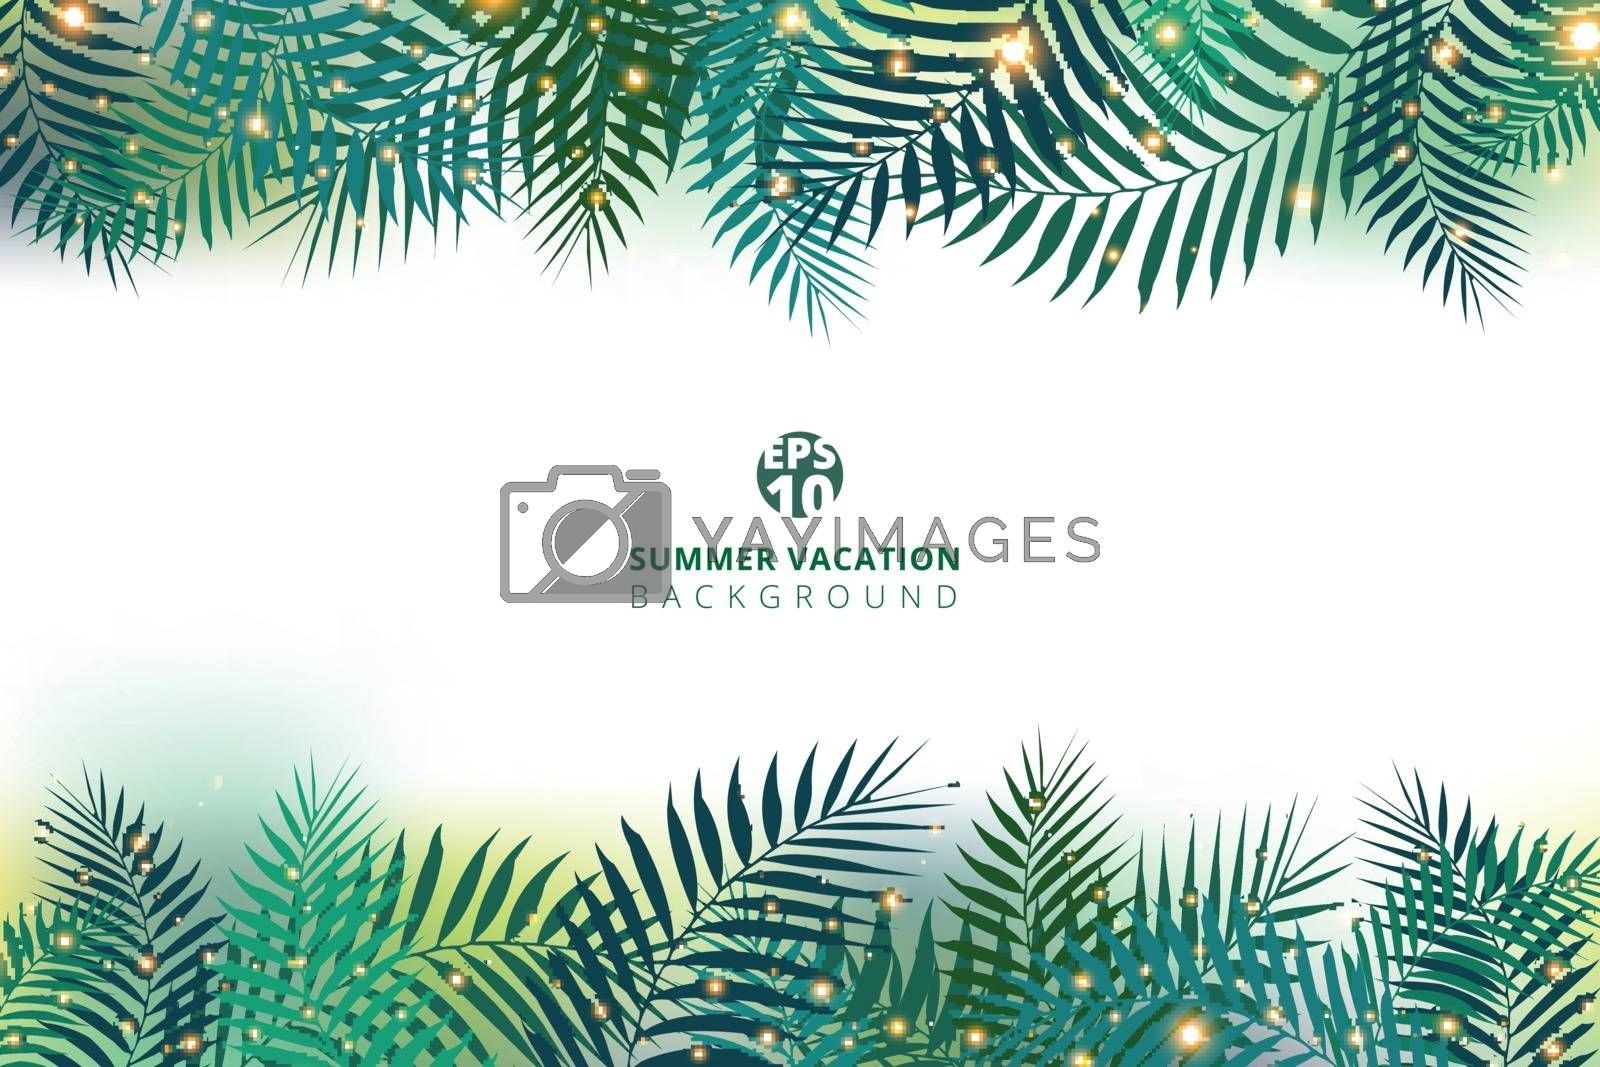 Summer time vacation and green palm leaves with lighting effect on white background. Vector illustration